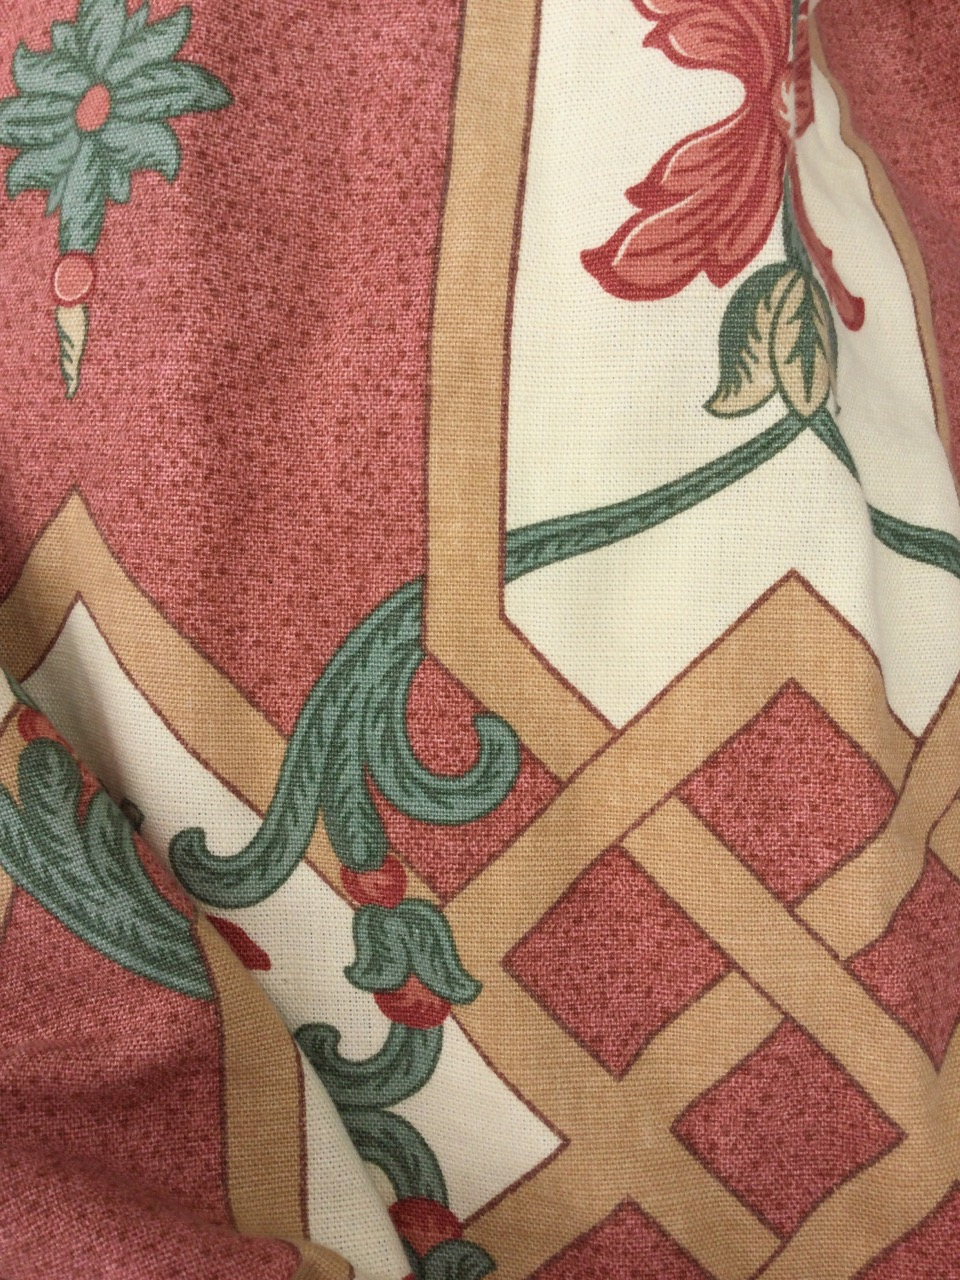 A single long lined linen curtain, printed with floral interlaced & scrolled panels on pink - Image 3 of 3